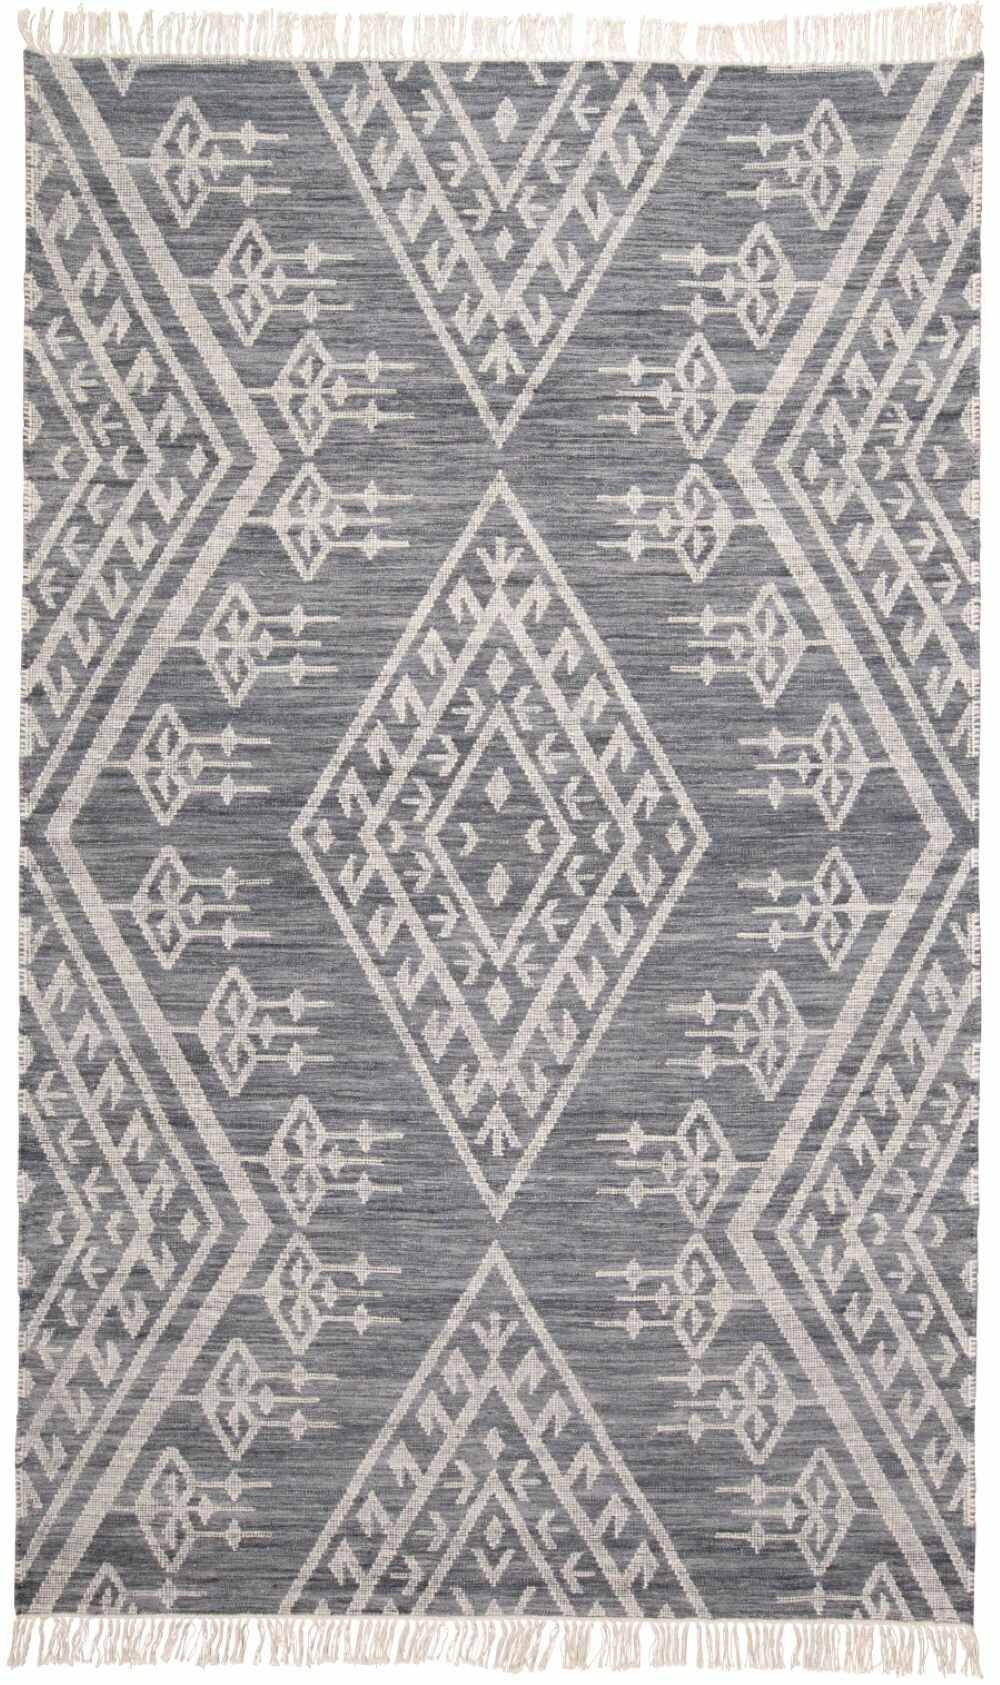 Haught Handwoven Flatweave Wool Cotton Gray Area Rug Reviews Allmodern